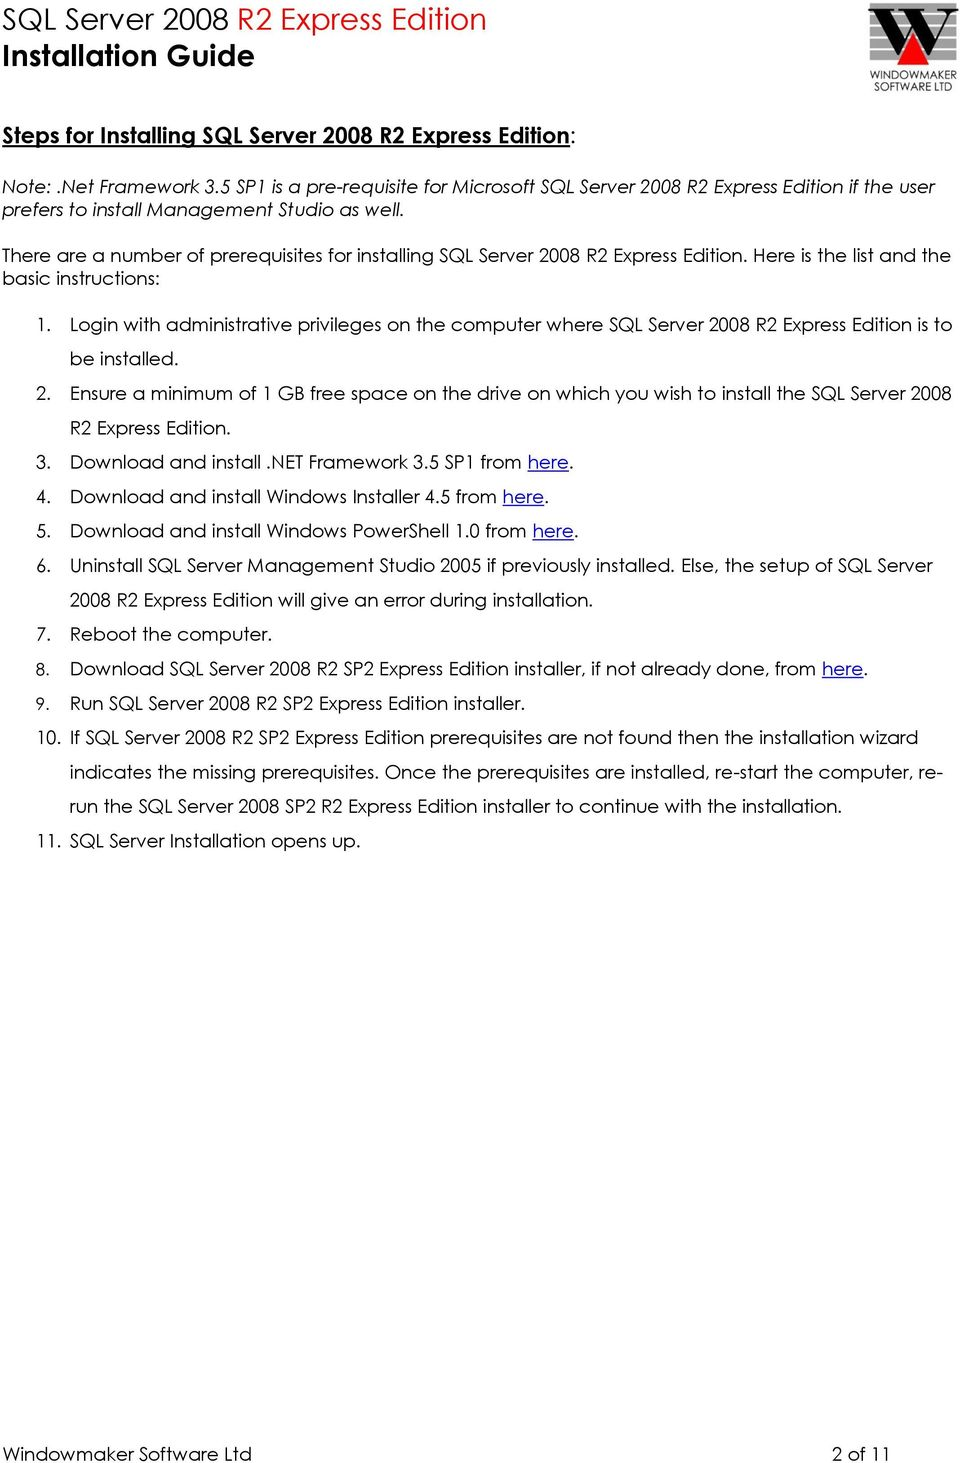 There are a number of prerequisites for installing SQL Server 2008 R2 Express Edition. Here is the list and the basic instructions: 1.